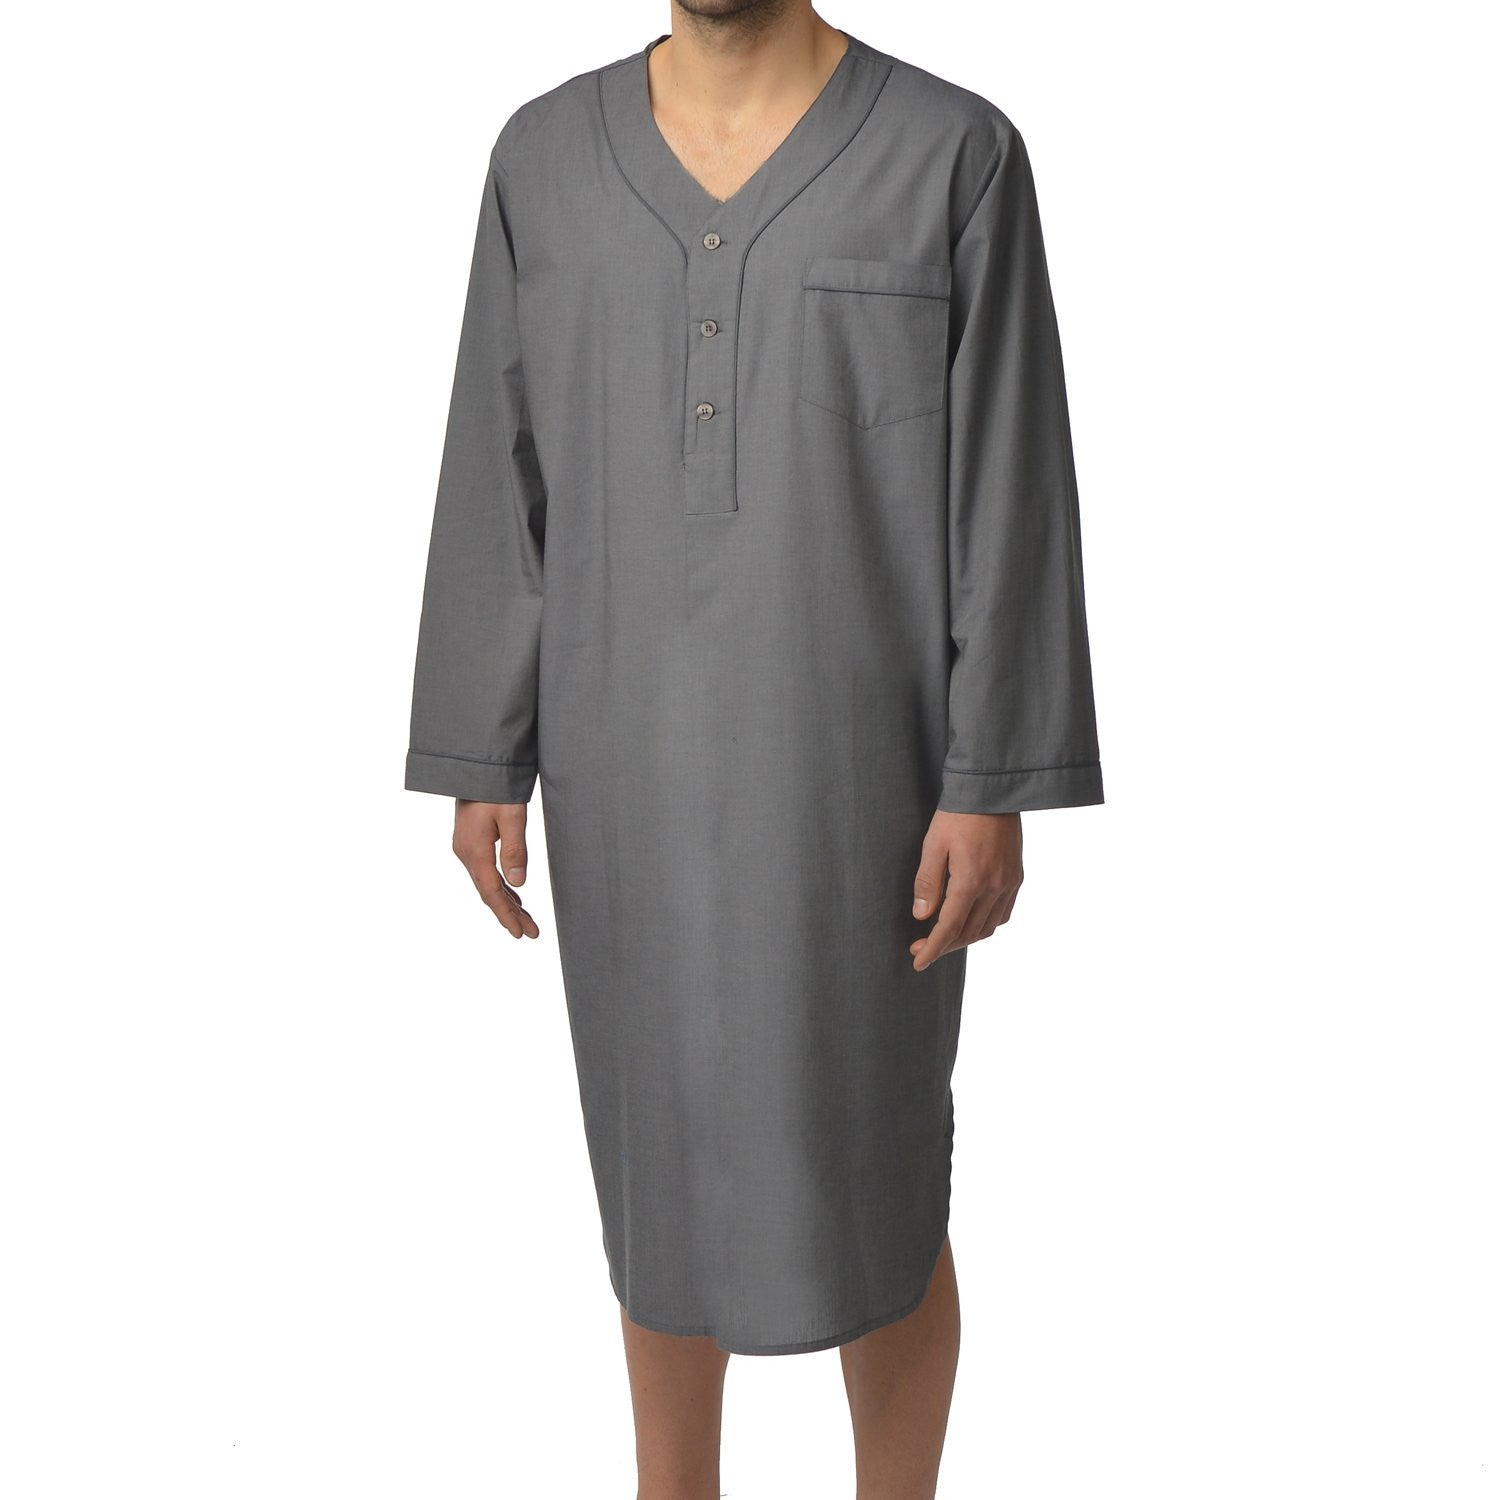 Cotton Nightshirt In Charcoal